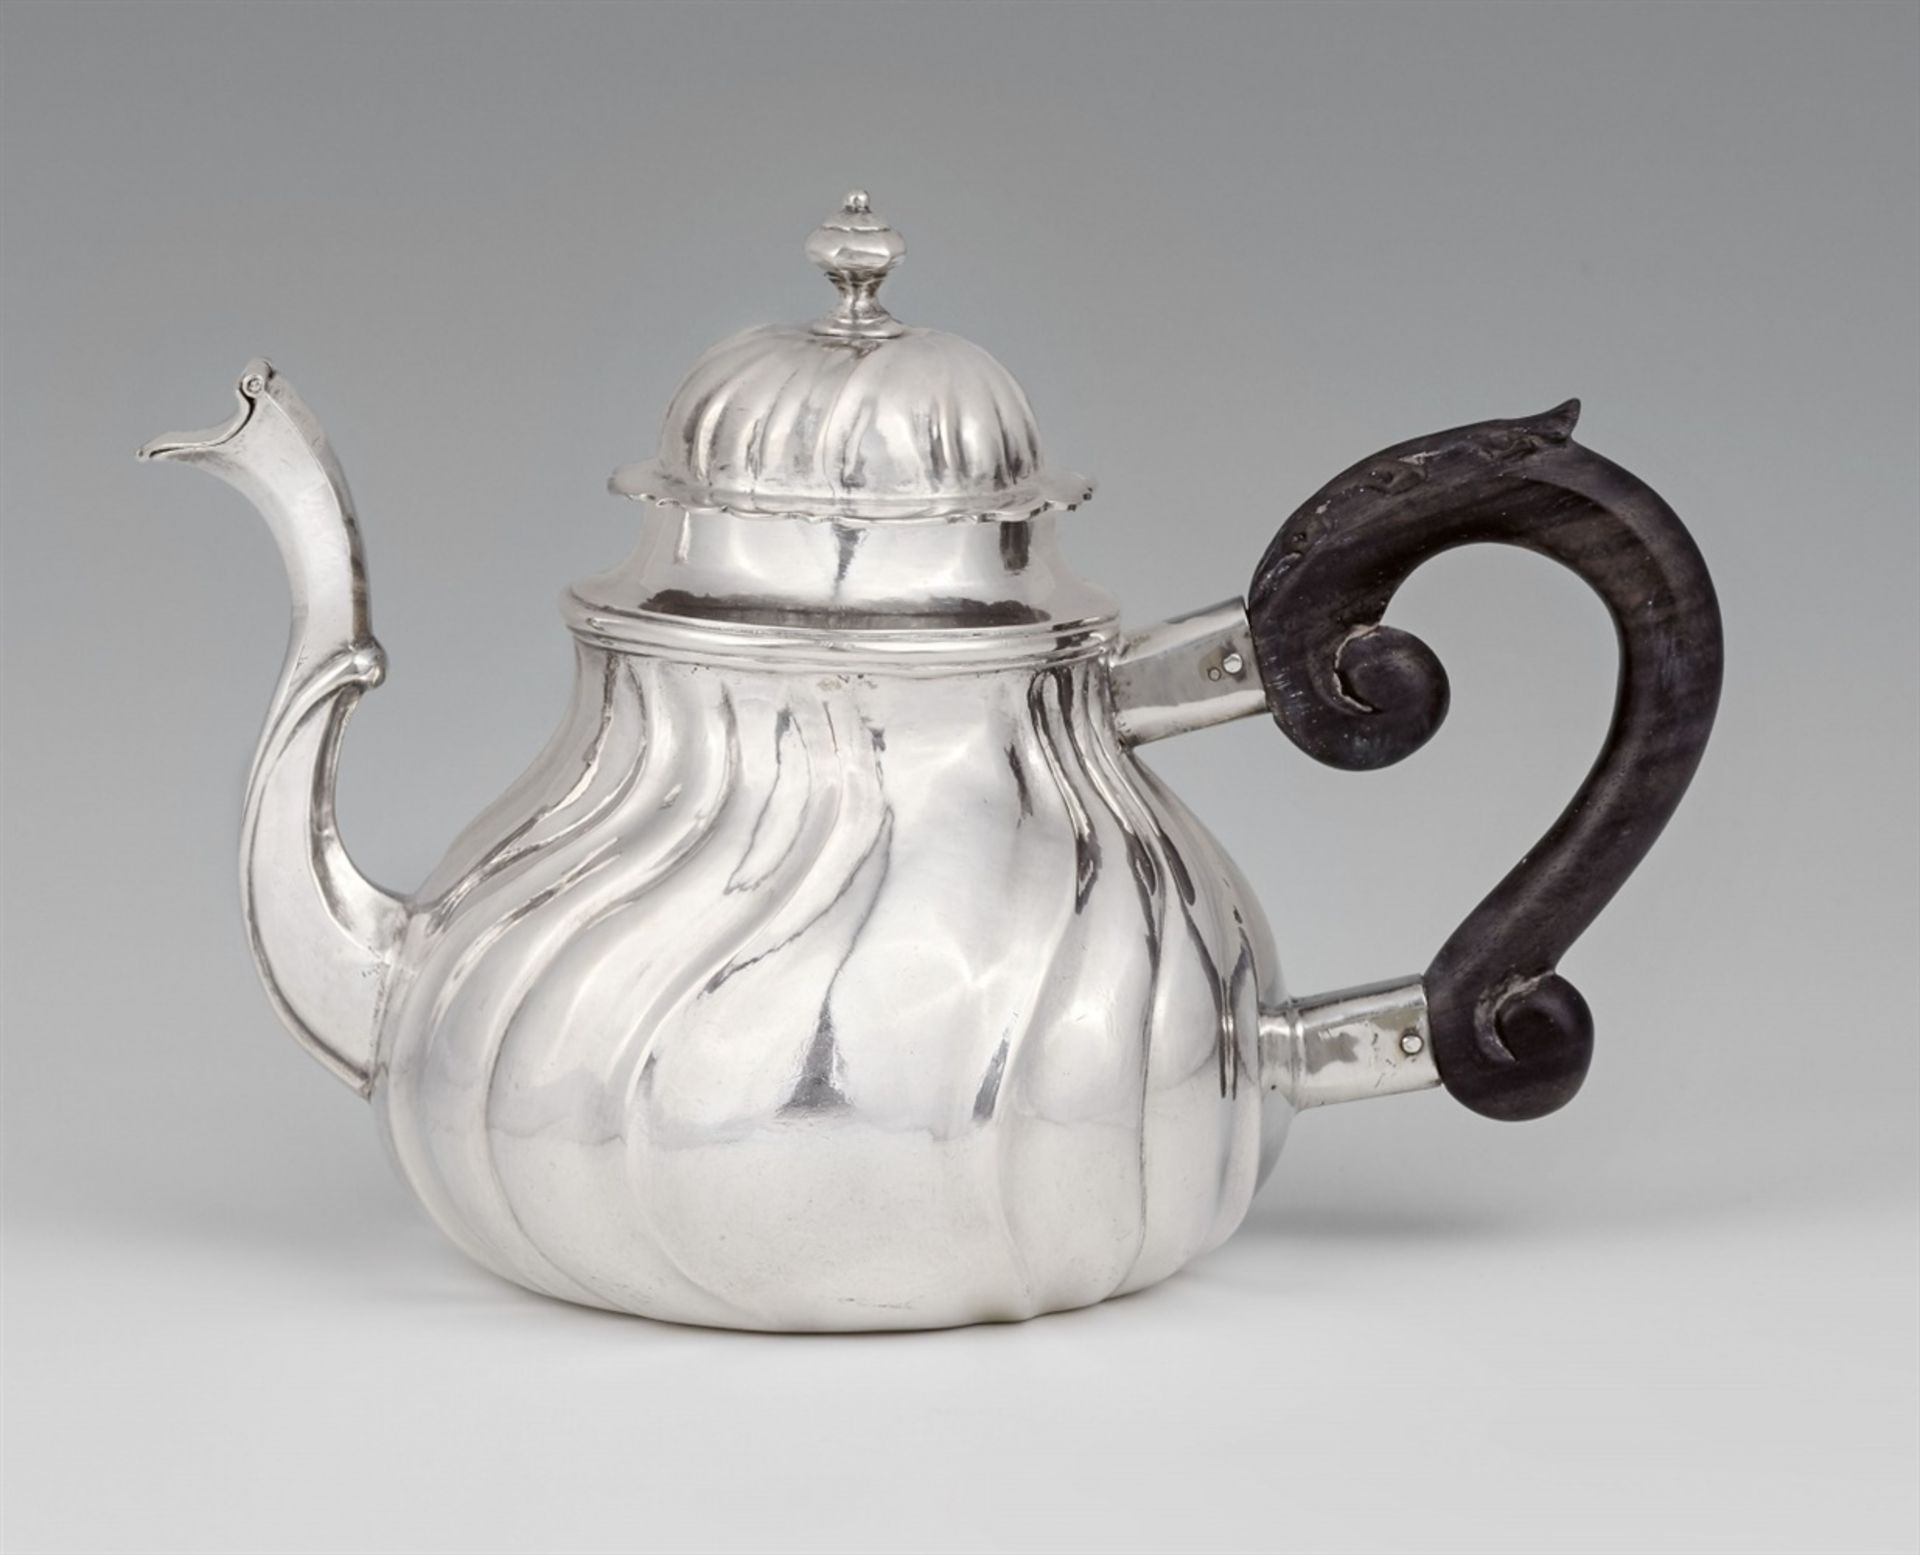 Los 728 - An Augsburg silver teapotSilver Twist fluted pear-form vessel with a carved wooden handle. Brands: